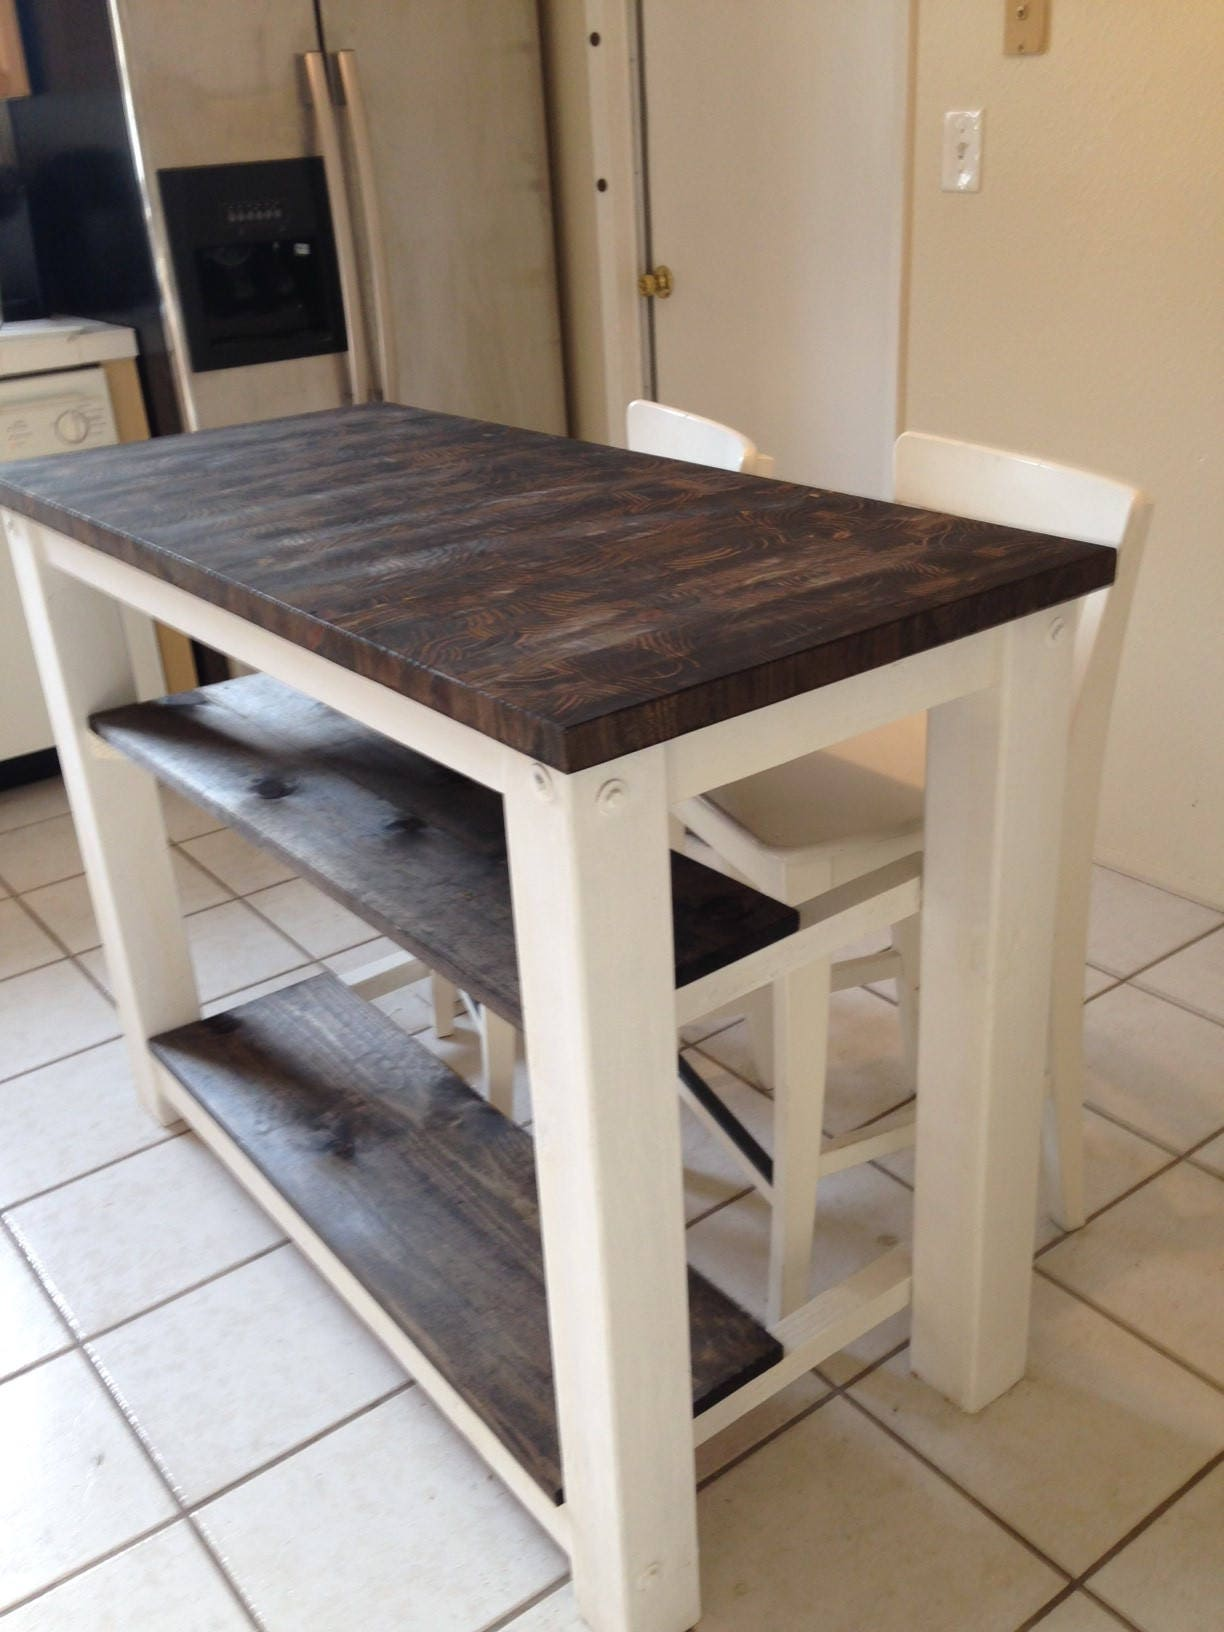 2 half shelves end grain kitchen island butcher block top for Wood top kitchen table